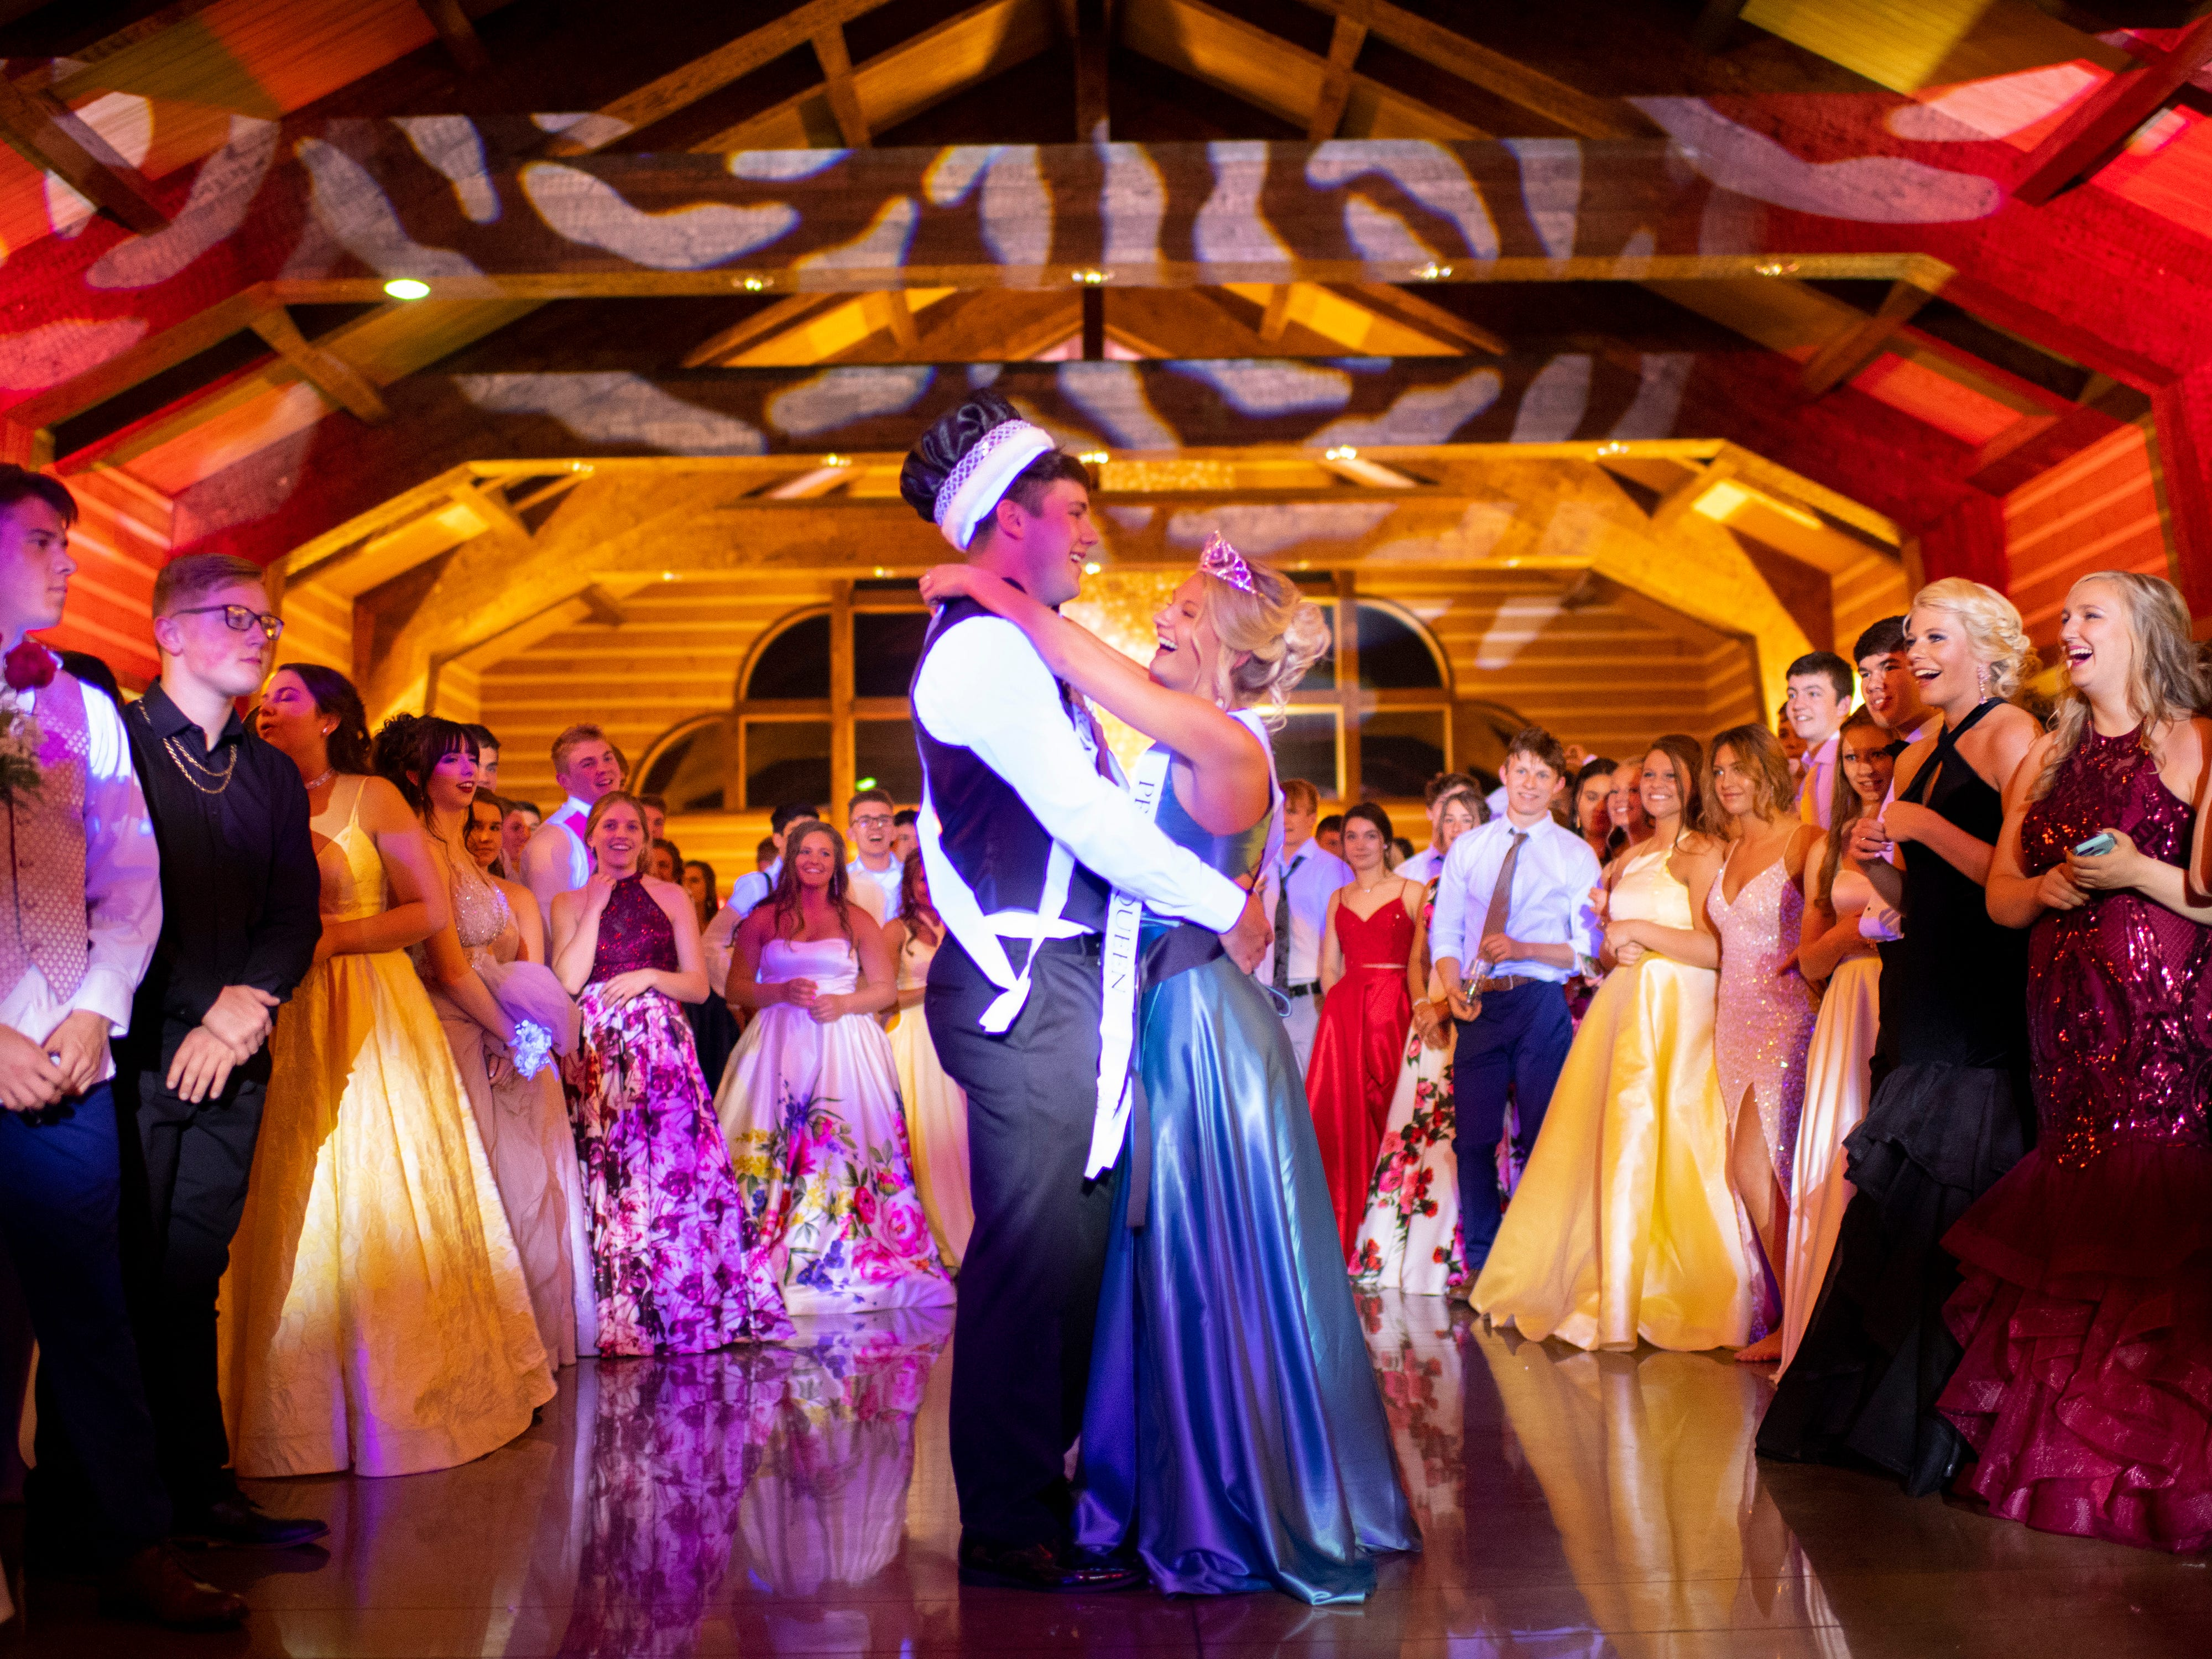 King Ben Ubelhor and Queen Vanessa Van Bibber dance after being crowned at Mater Dei's prom at Burdette Park's Discovery Lodge Saturday night.